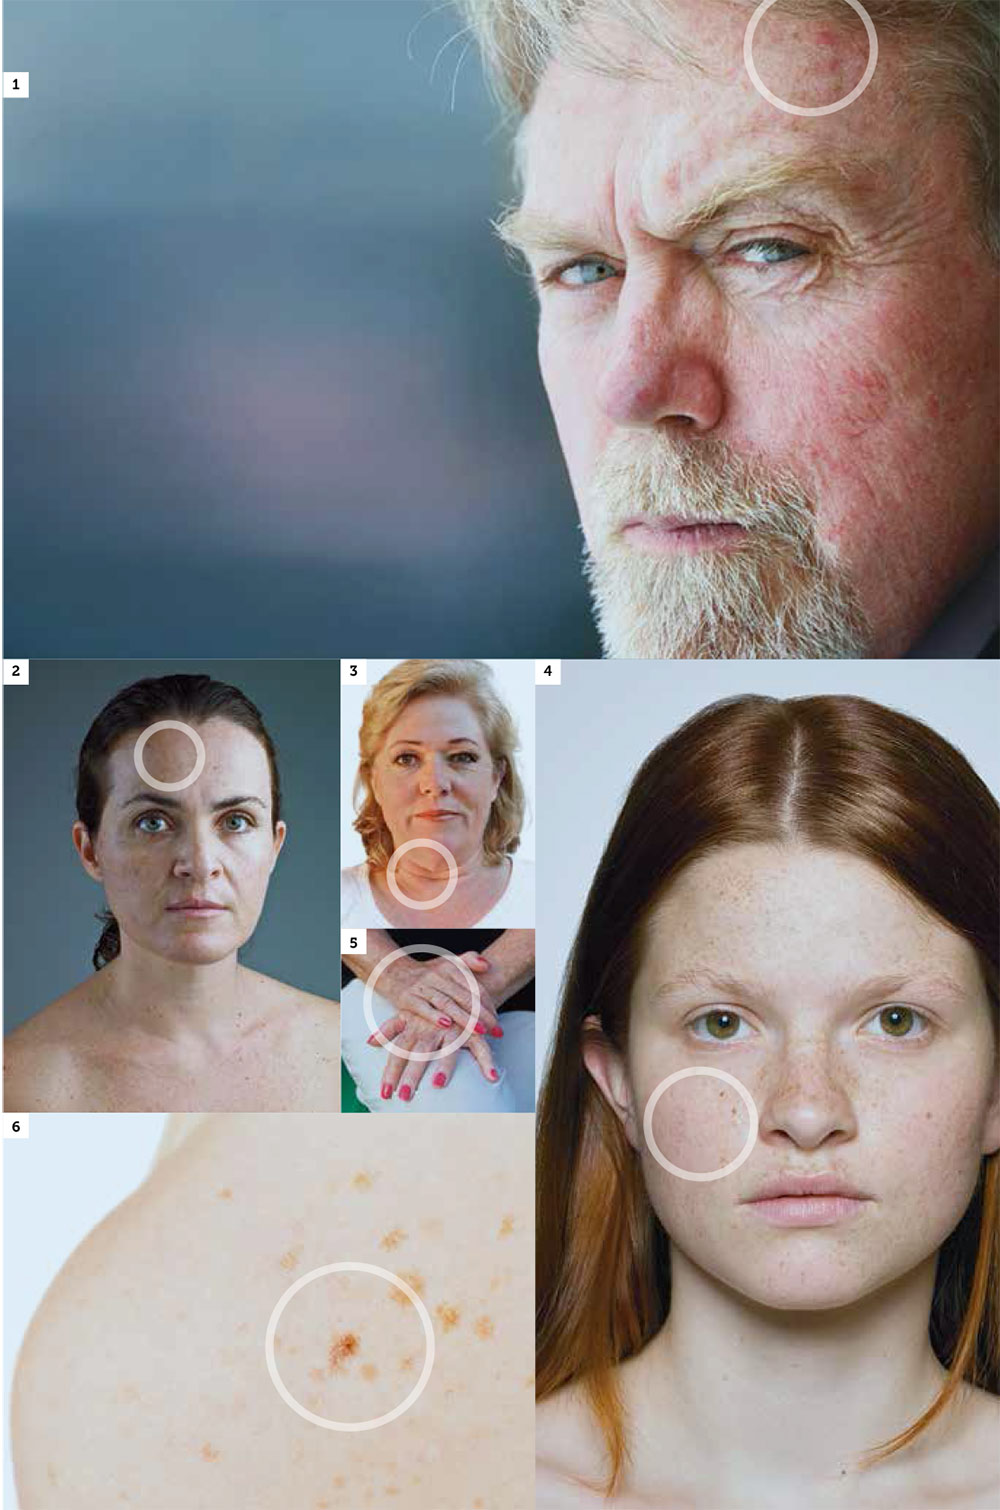 The deleterious effects of the sun are responsible for up to 90 per cent of skin aging. Pictured opposite, some early signs of photoaging include:  (1) sun-related keratosis; (2) pigmented spots; (3) deep wrinkles; (4) freckles; (5) age spots; (6) solar lentigines.